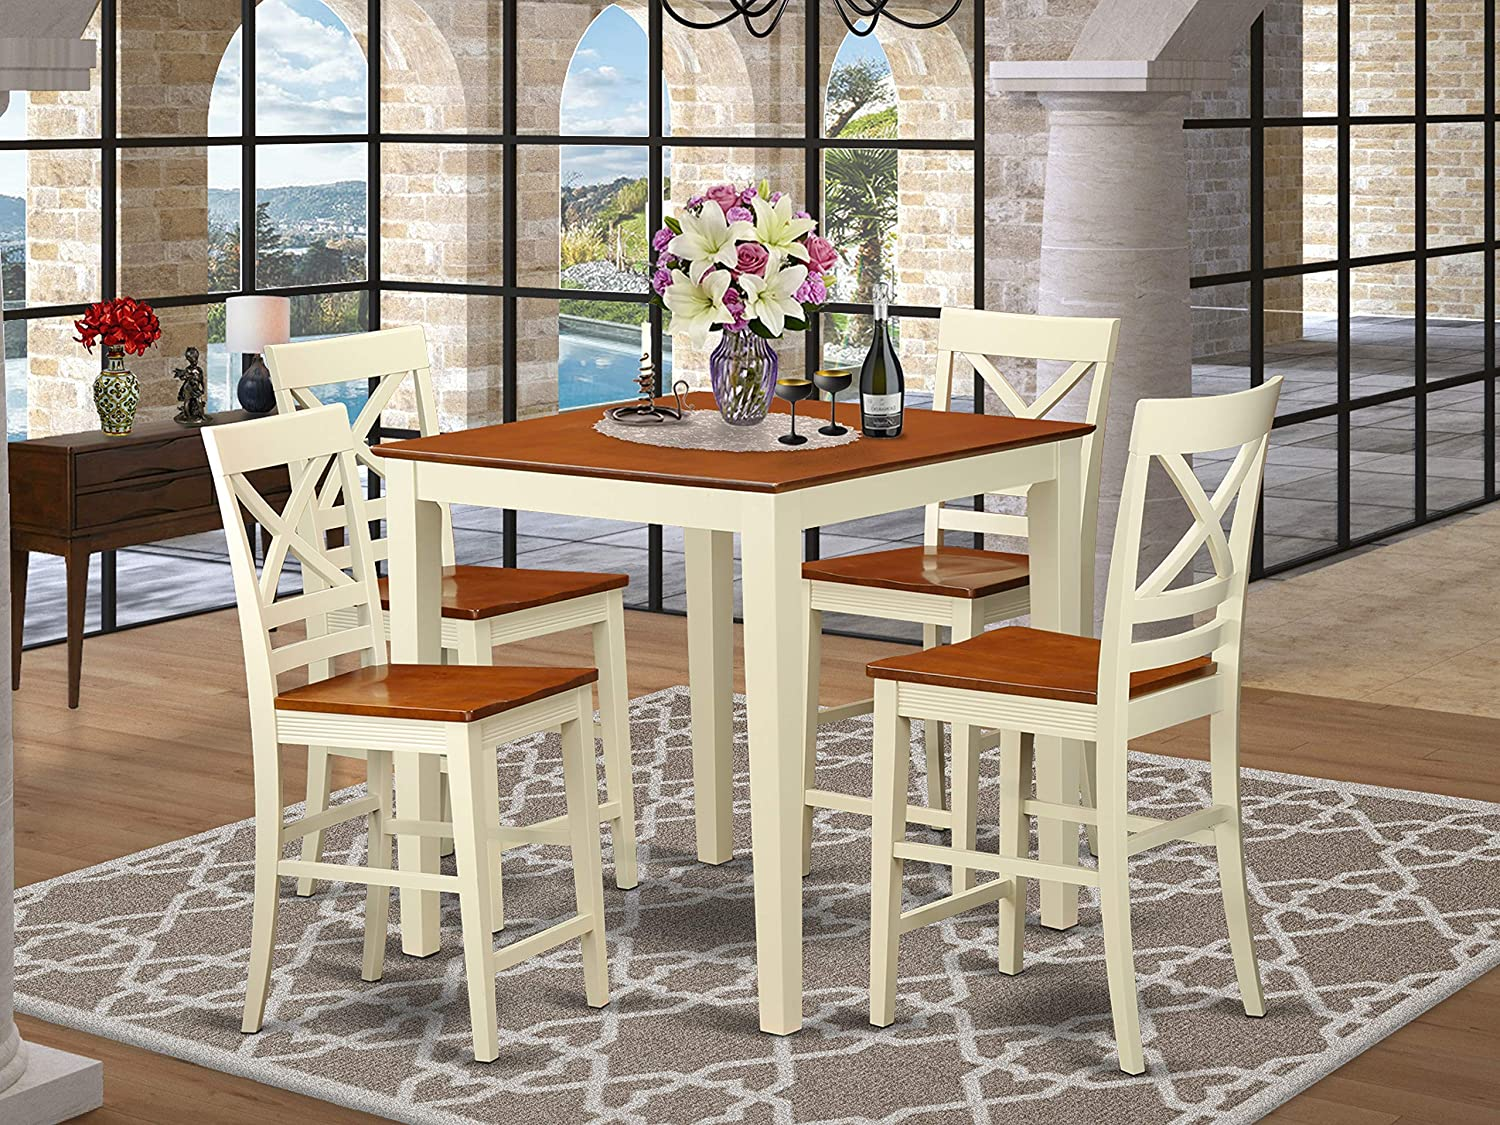 PC Dining counter height set - Dining Table and 4 bar stools.